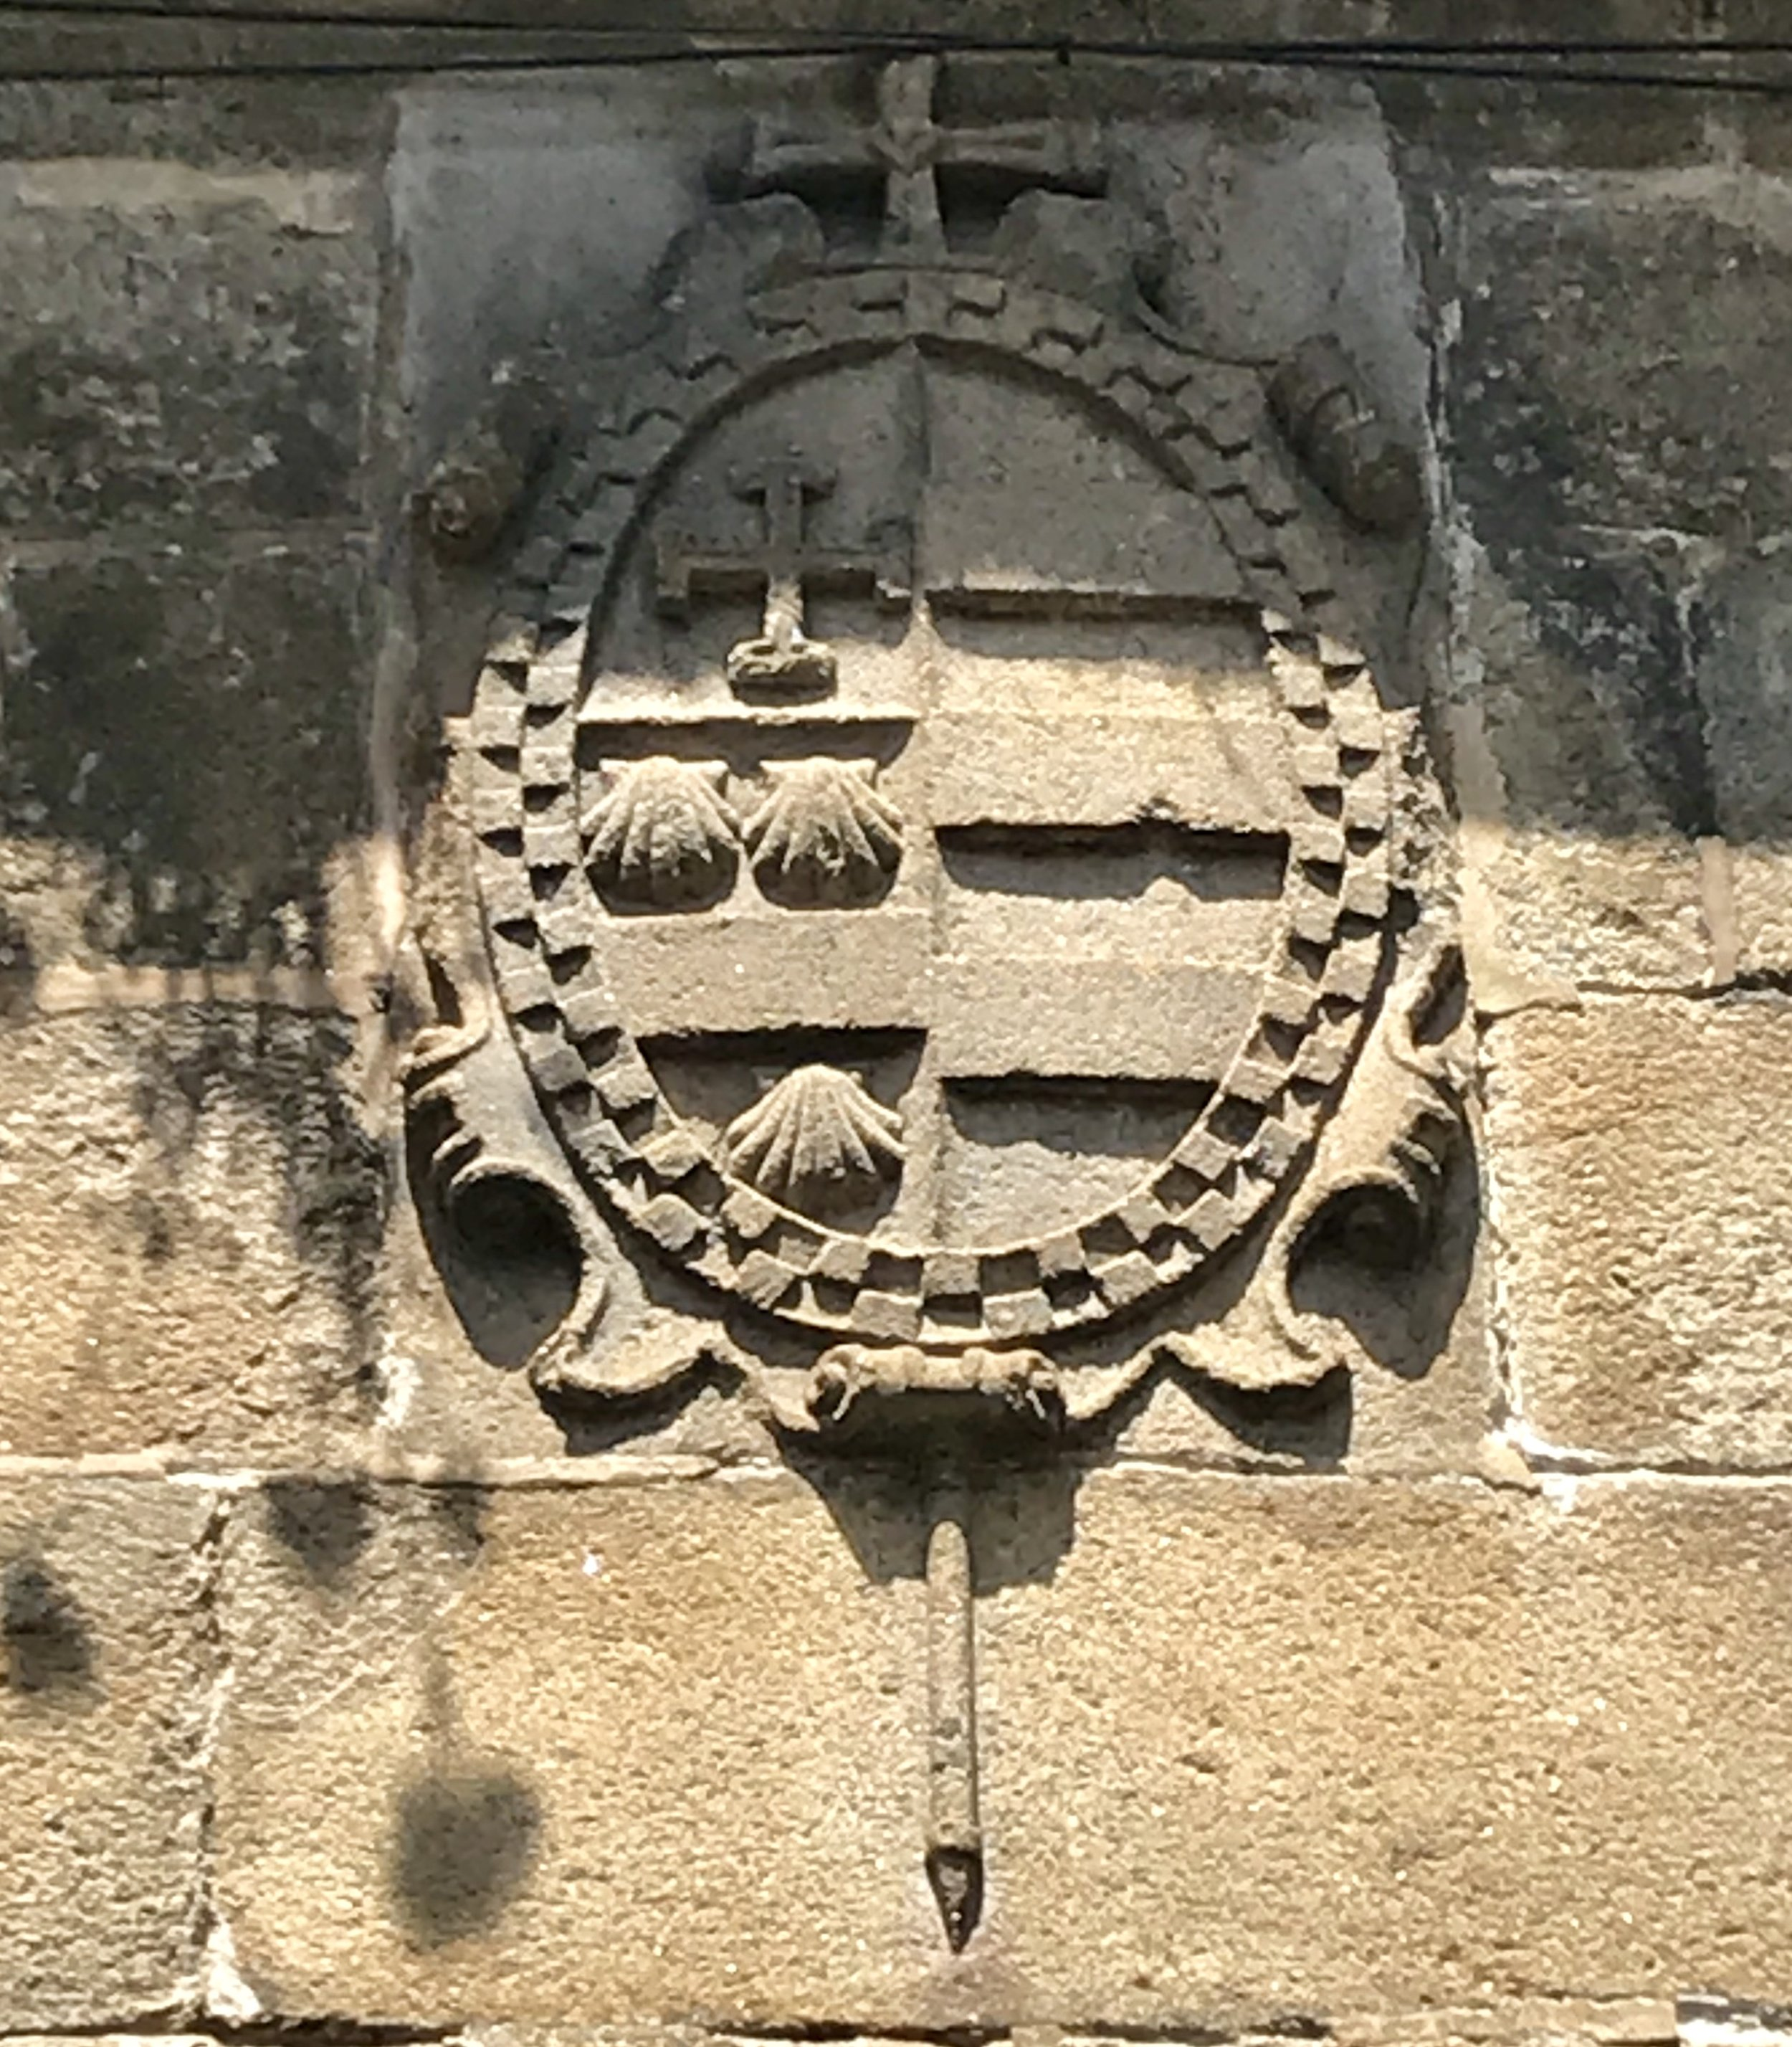 Significant wall carvings on the Pilgrims Trail (Santiago de Compostela).